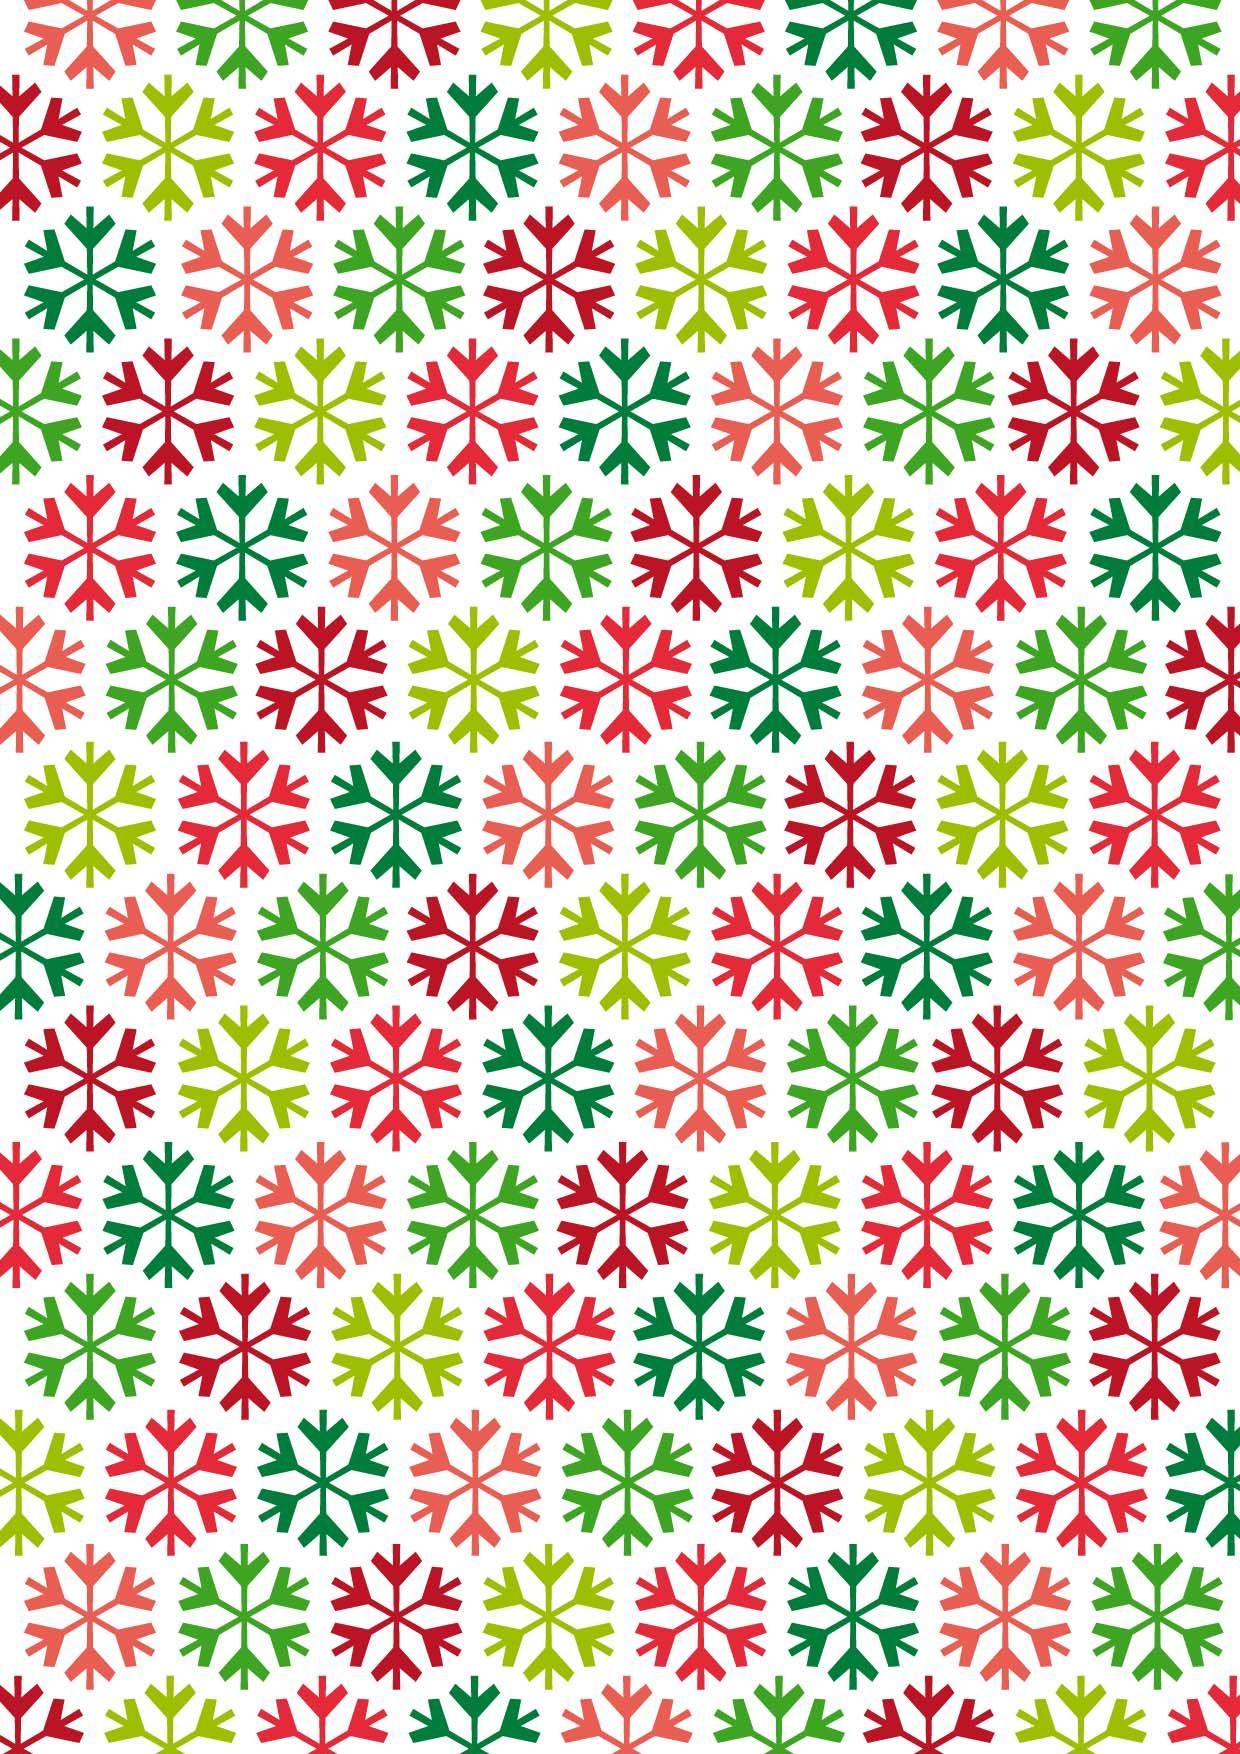 Rainbow snowflakes by papercrafts inspirations diy cards and rainbow snowflakes by papercrafts inspirations christmas jeuxipadfo Images